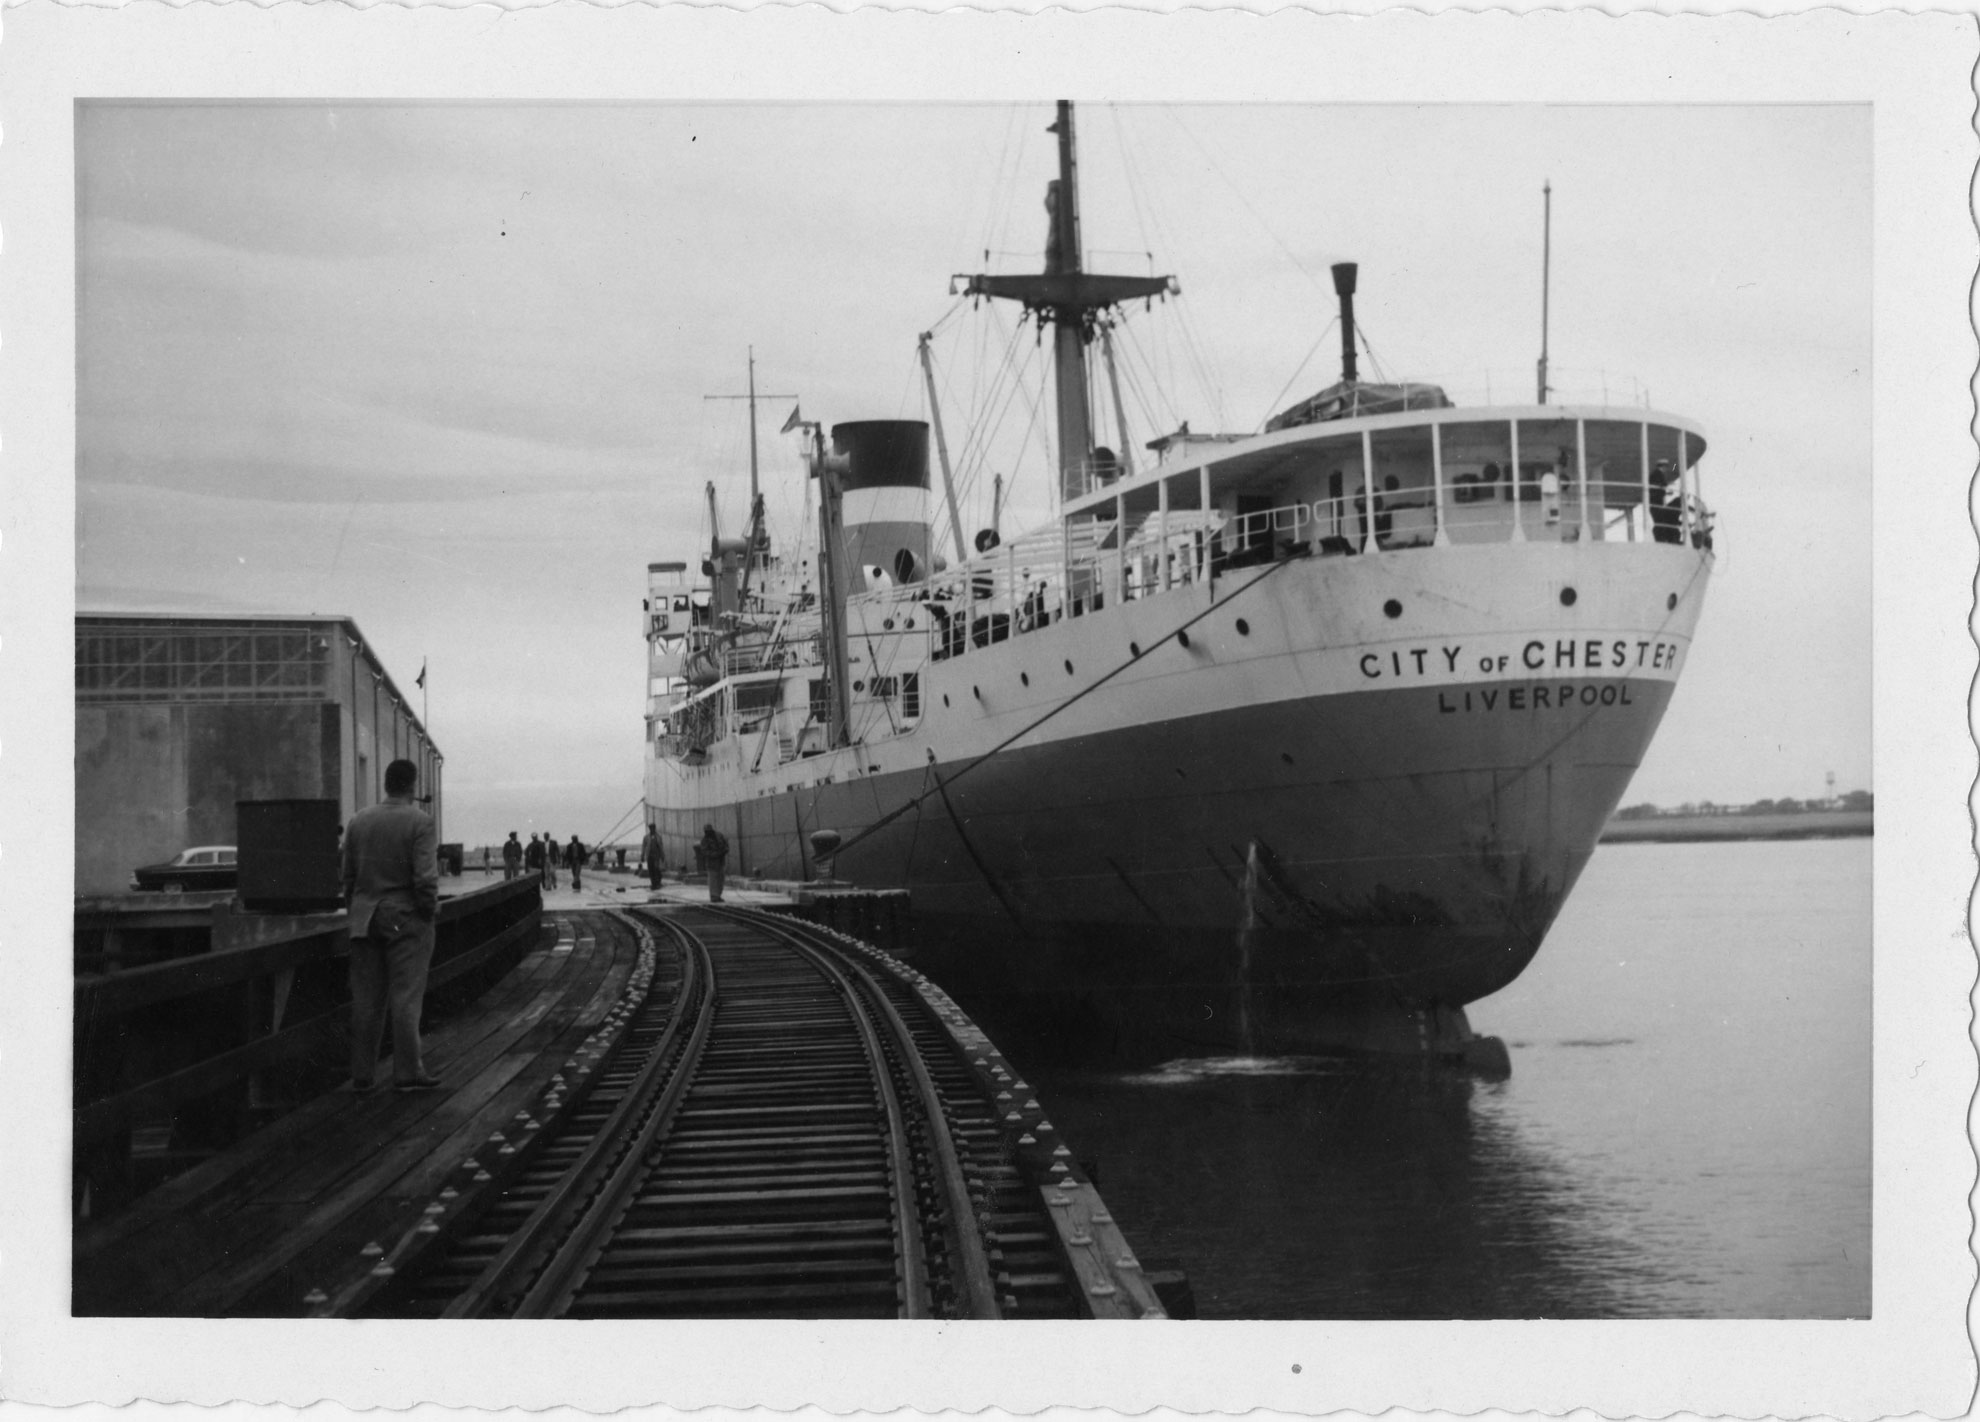 The City of Chester of Liverpool docked at Port of Port Royal